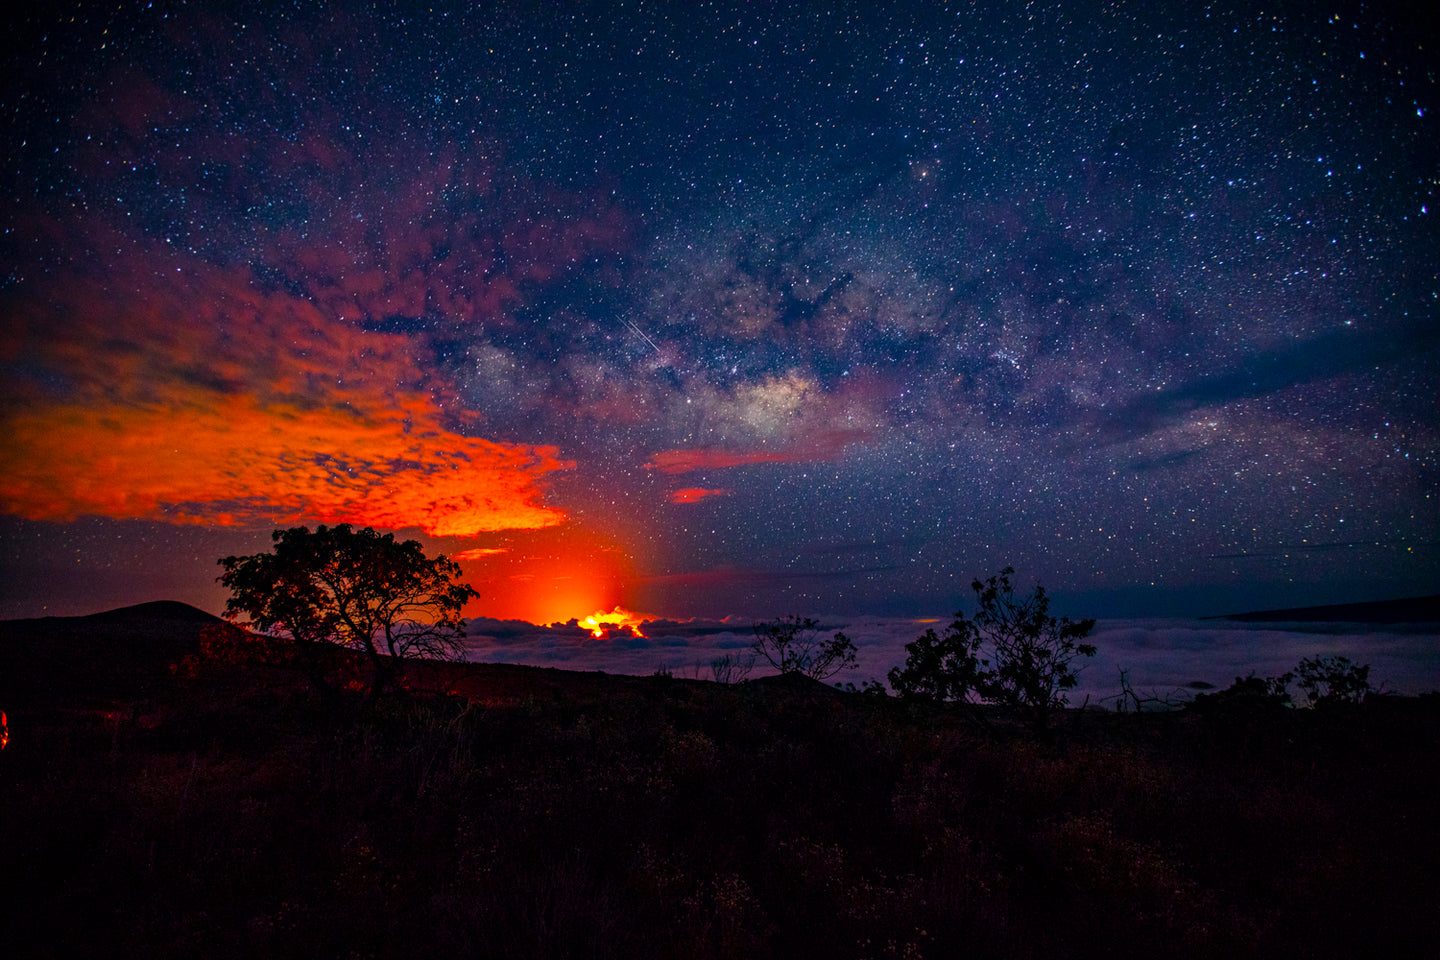 MILKY WAY OVER KILAUEA